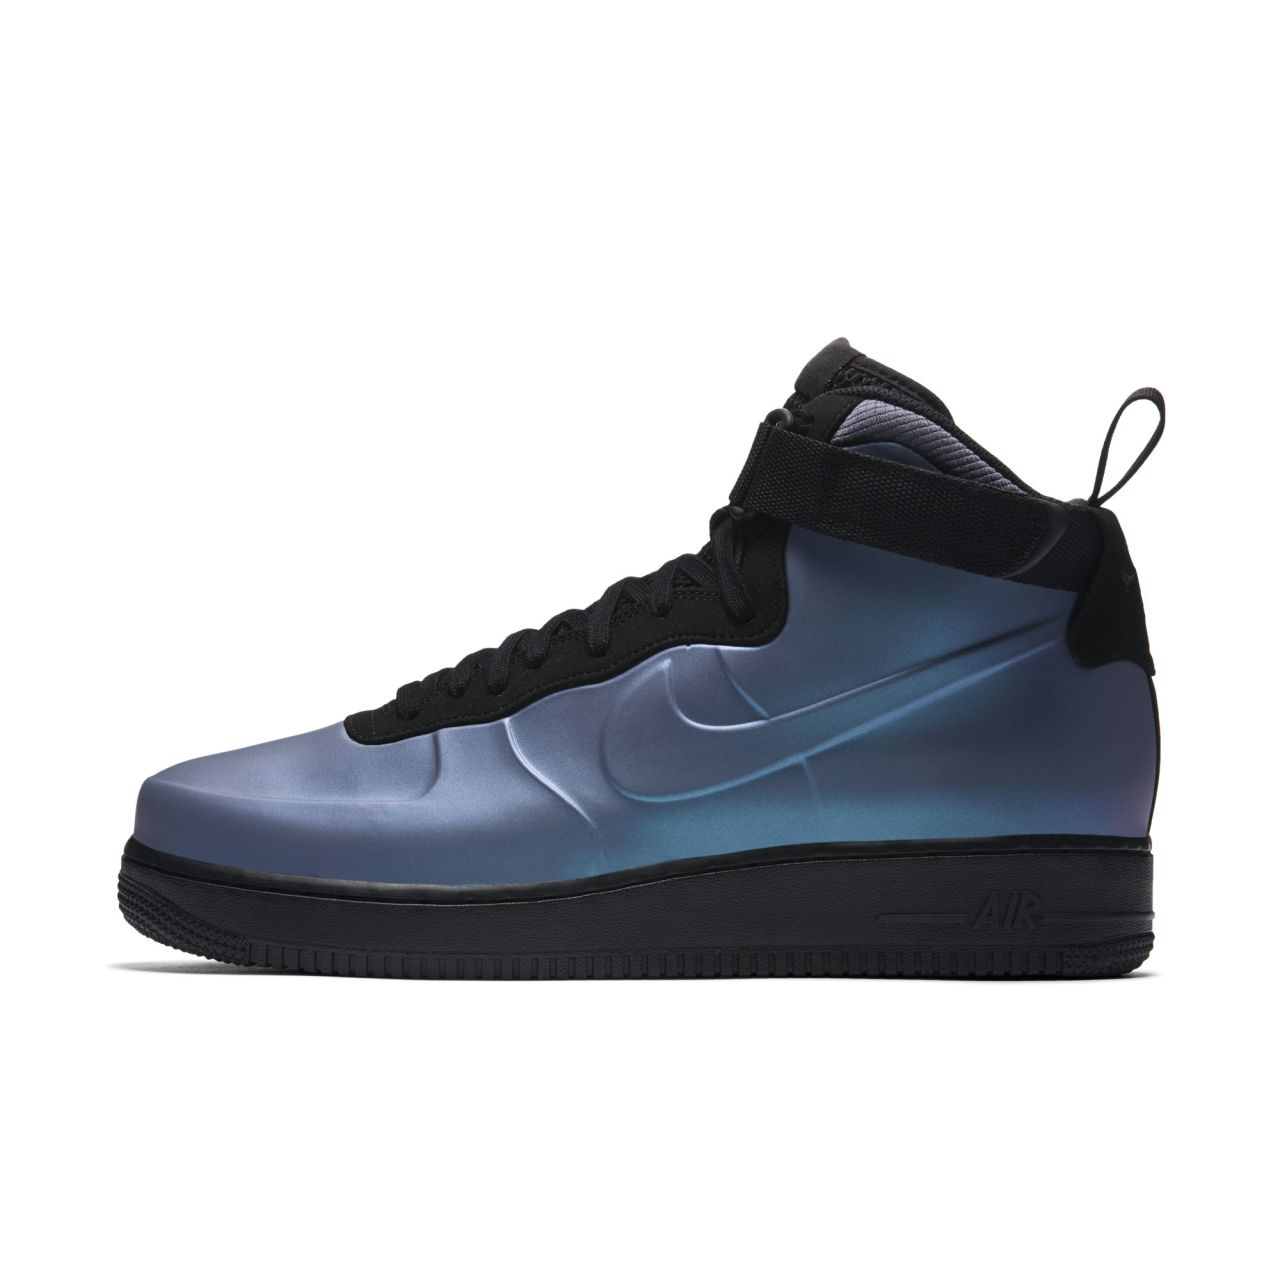 huge discount 7d1b2 4d4ce Nike Air Force 1 Foamposite returns this year  Analykix